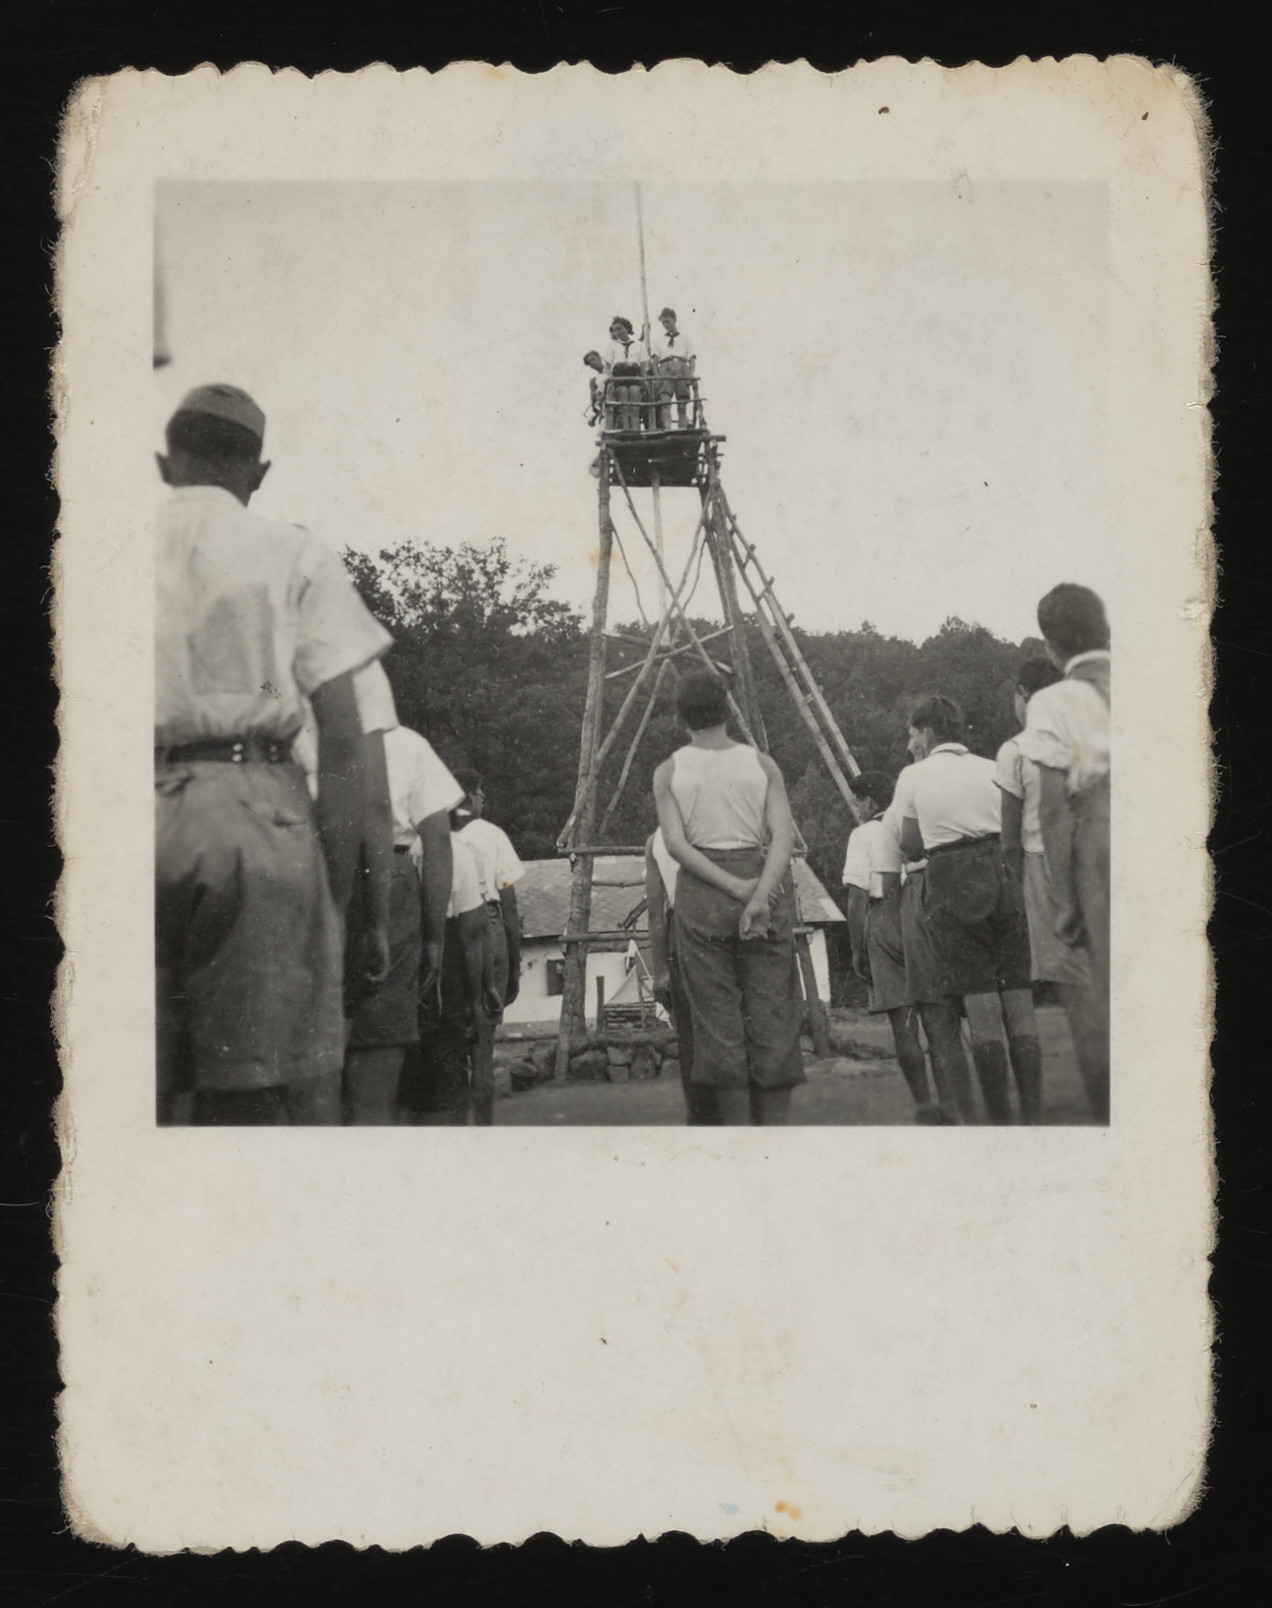 Hungarian Jewish teenagers climb a wooden tower in a Zionist summer camp.